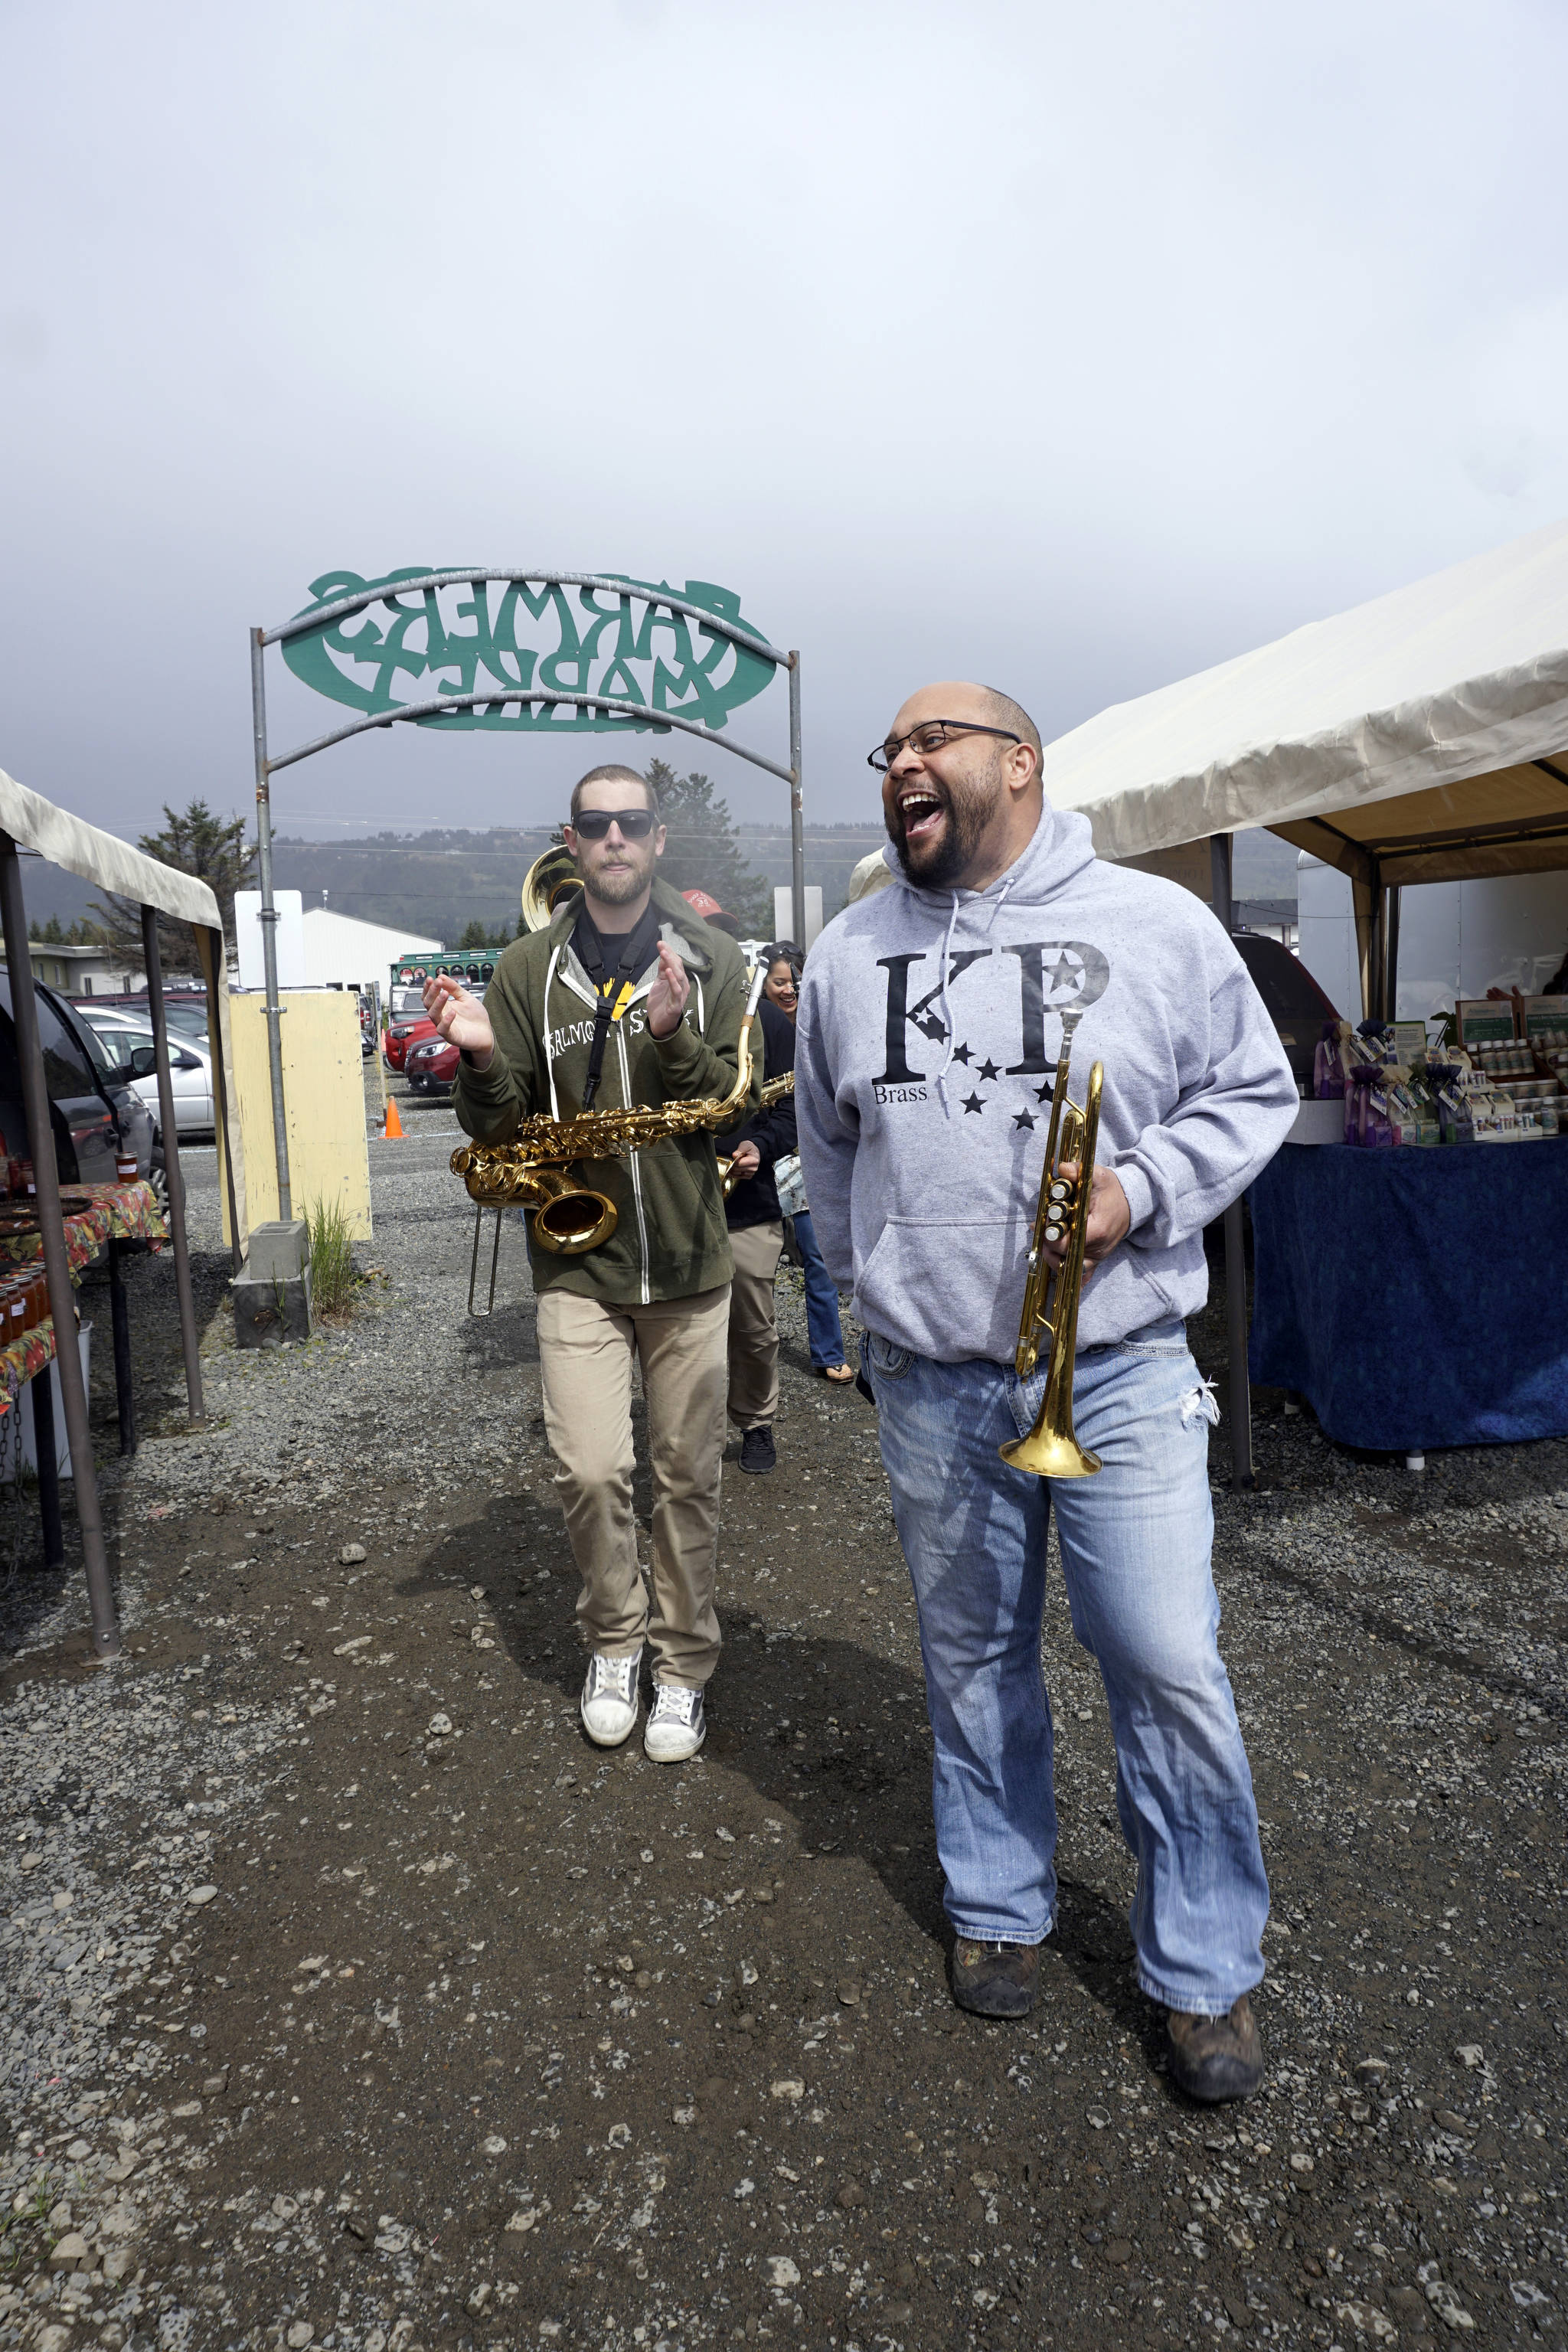 Nelton Palma marches with the KP Brass Band at the Homer Farmers Market for opening day on May 26, 2018. (Photo by Michael Armstrong/Homer News)